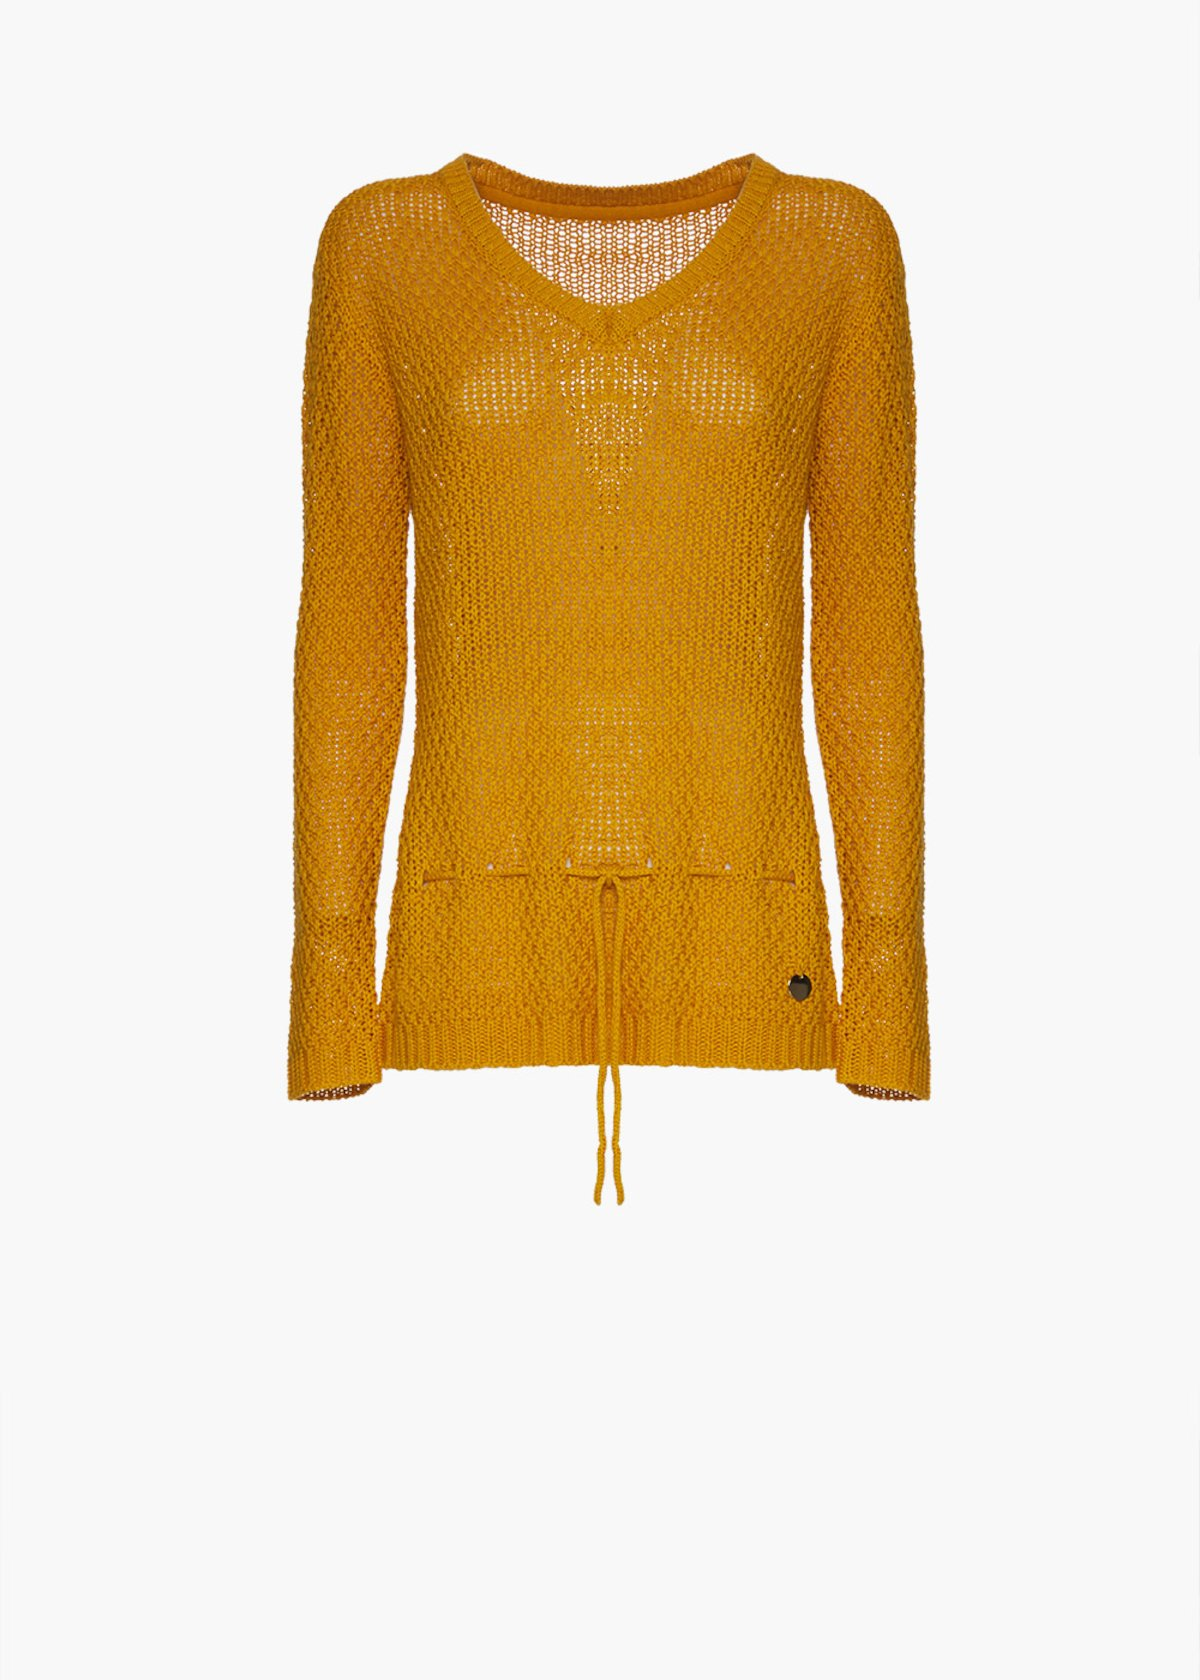 V-neckline and drawnstrings at the bottom sweater Magdy - Brown - Woman - Category image